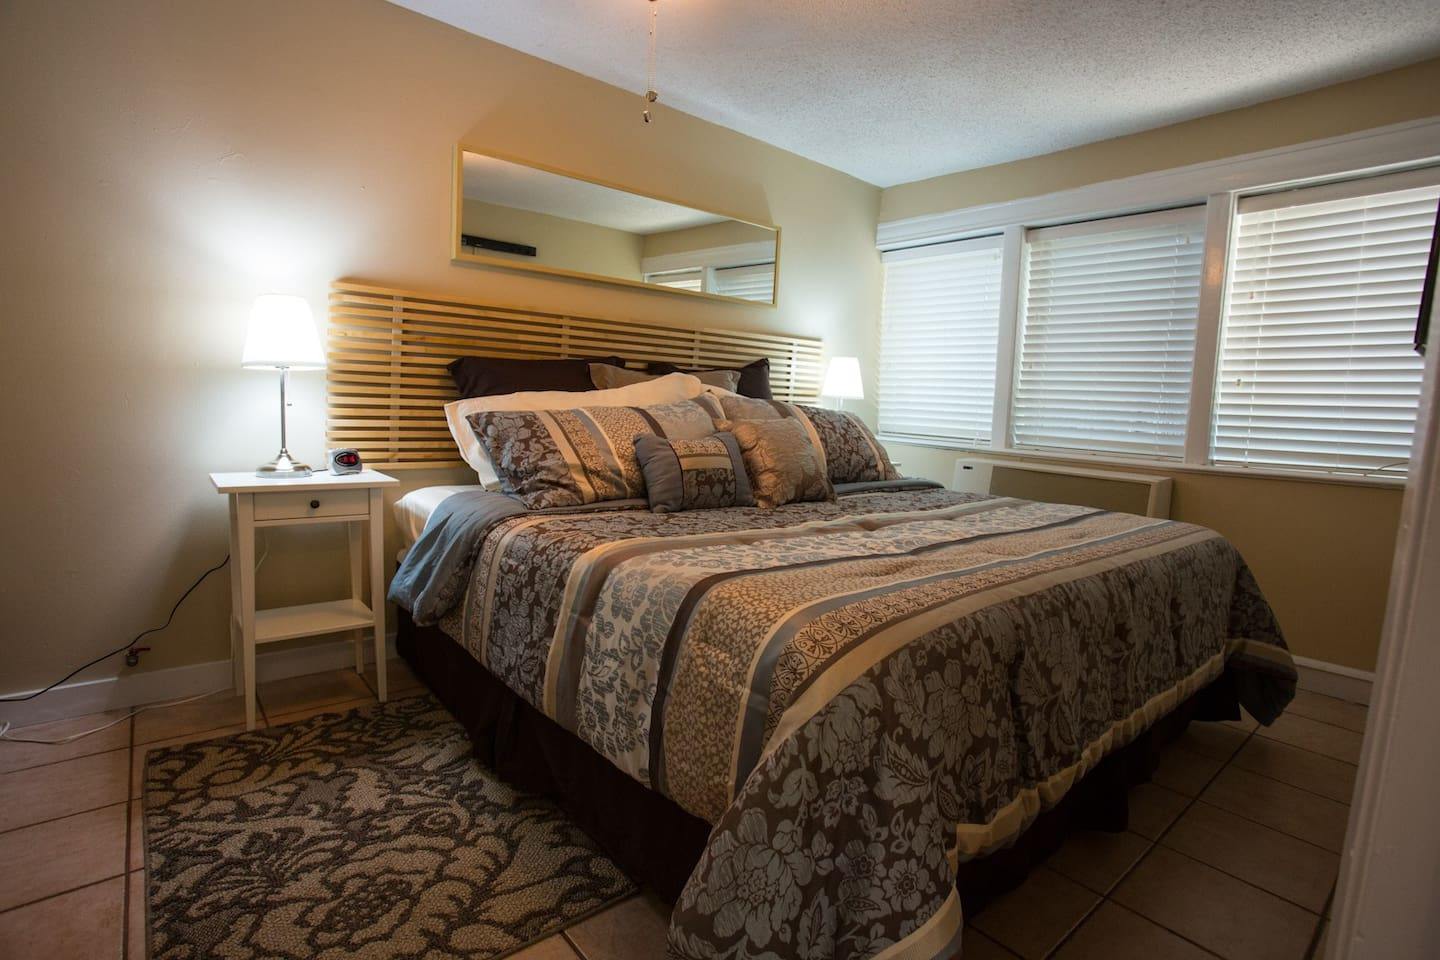 Master bedroom with luxurious king size bed